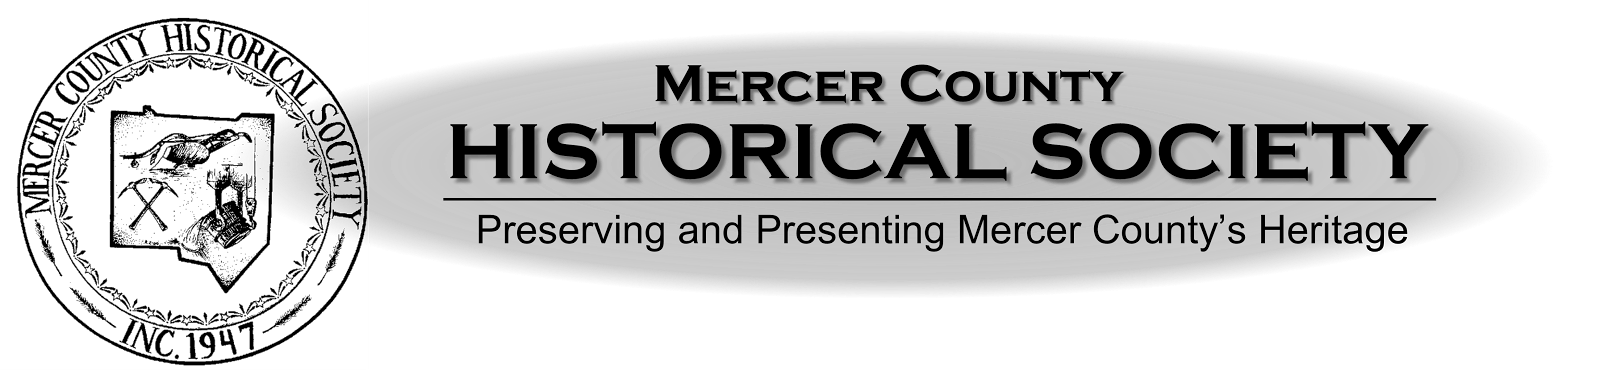 Mercer County Historical Society, Mercer, Pa